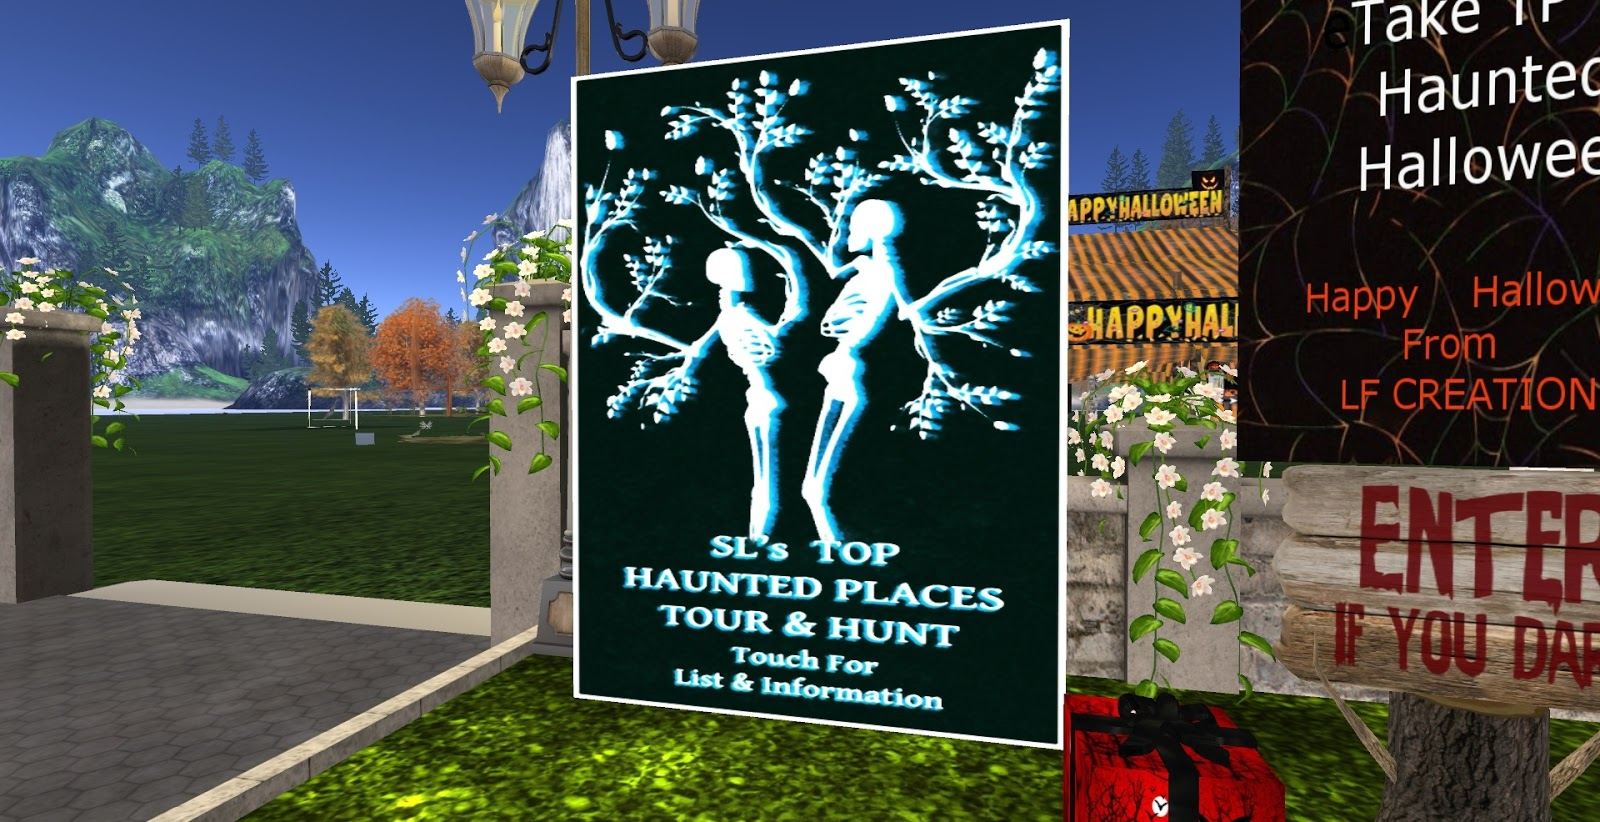 halloween is always a treat in second life creators and designers go out of their way to make spooky scary places there is a poster around that gives